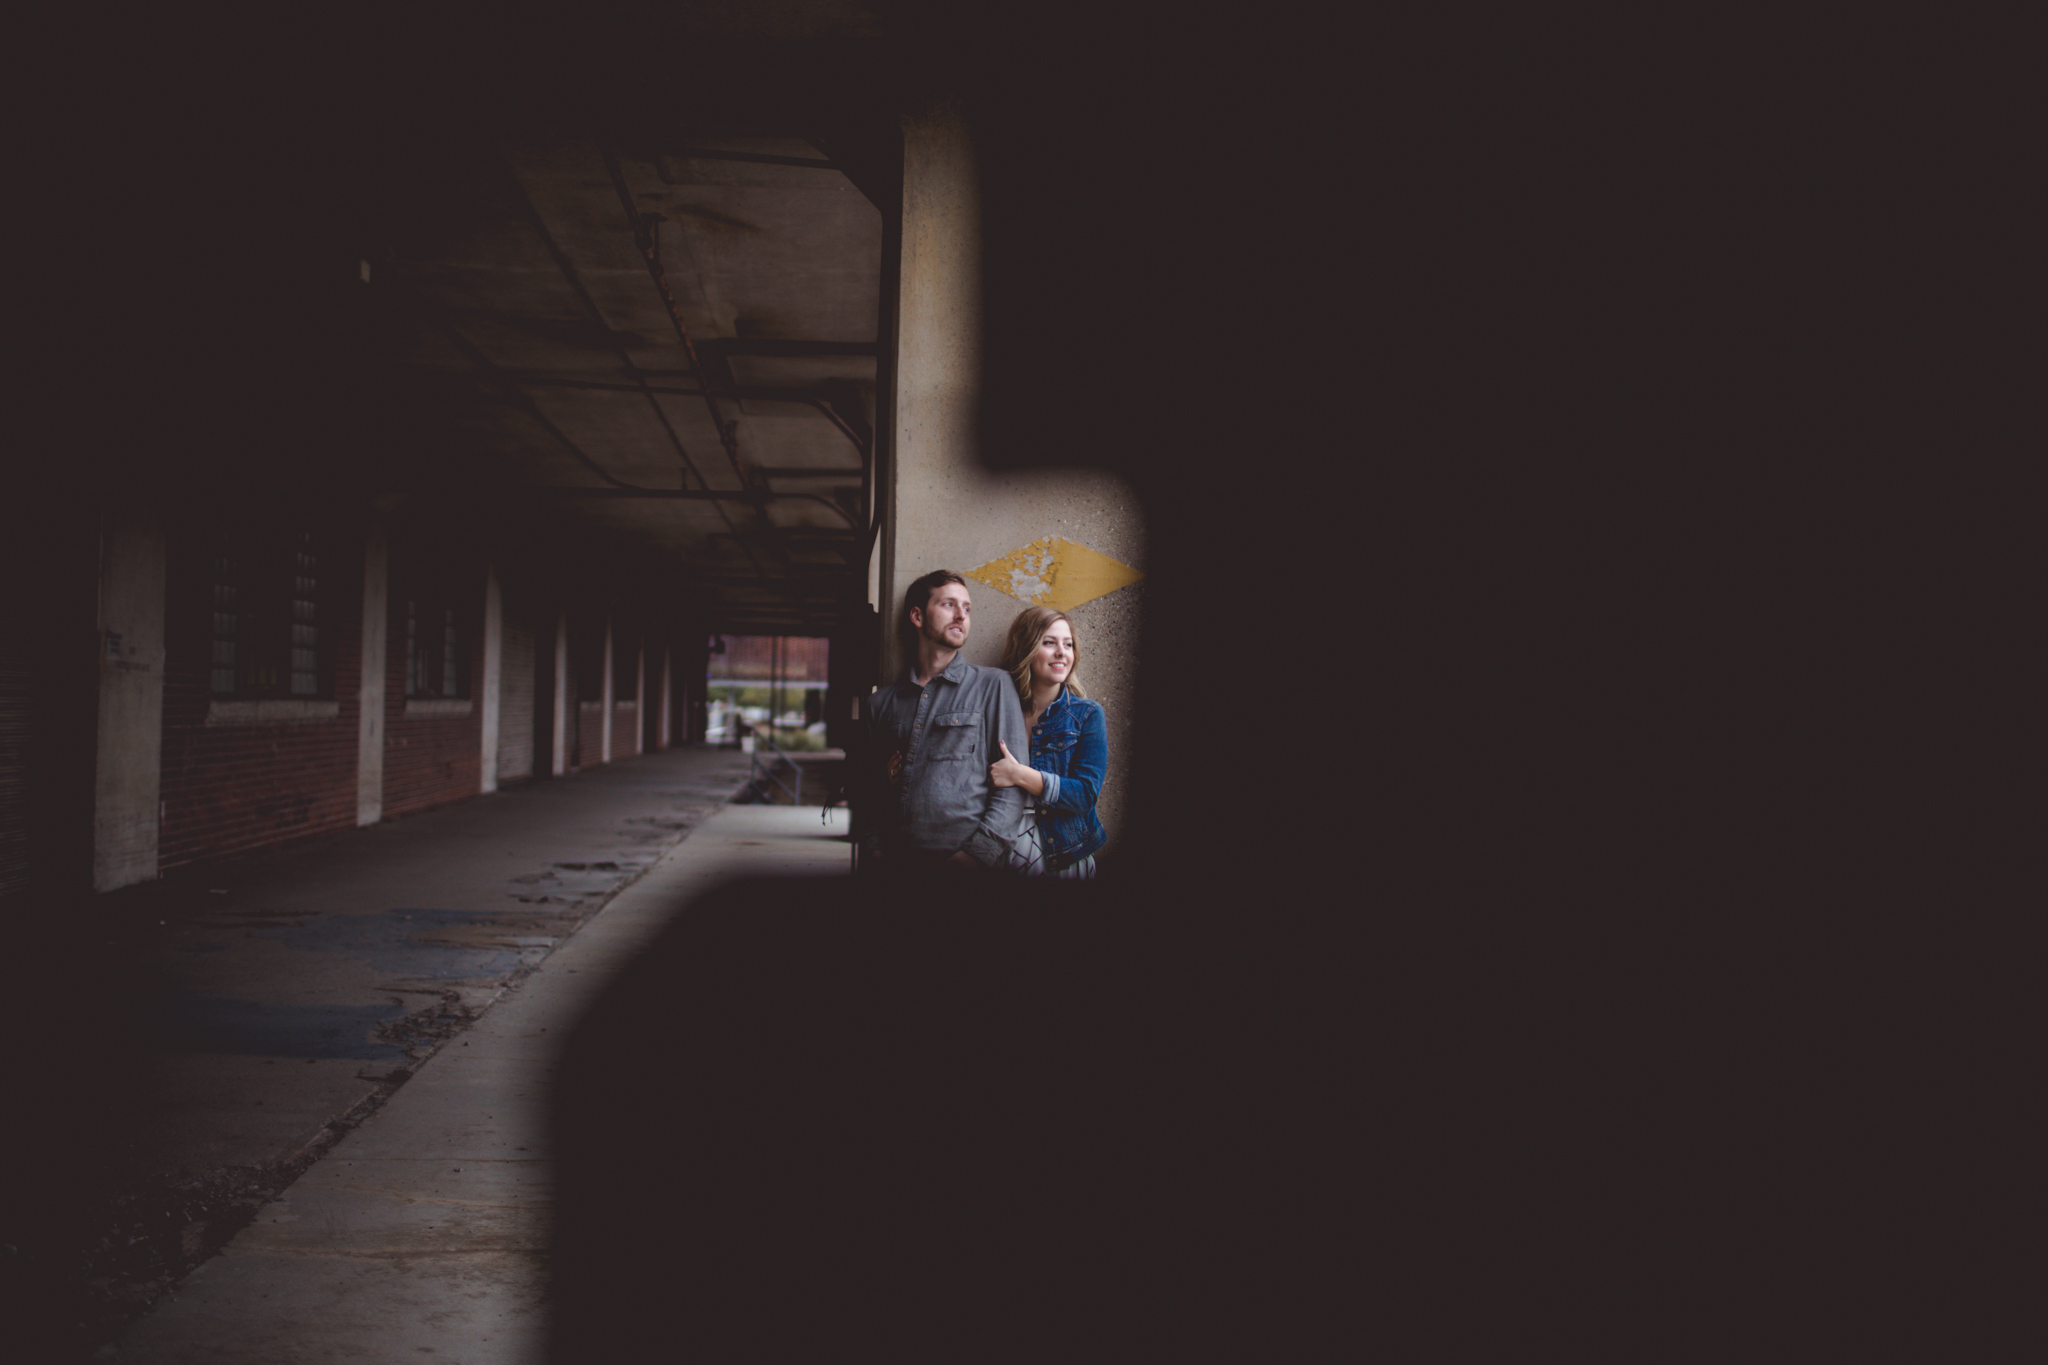 Cambria_Philly_Engagement_Photography-7873.jpg